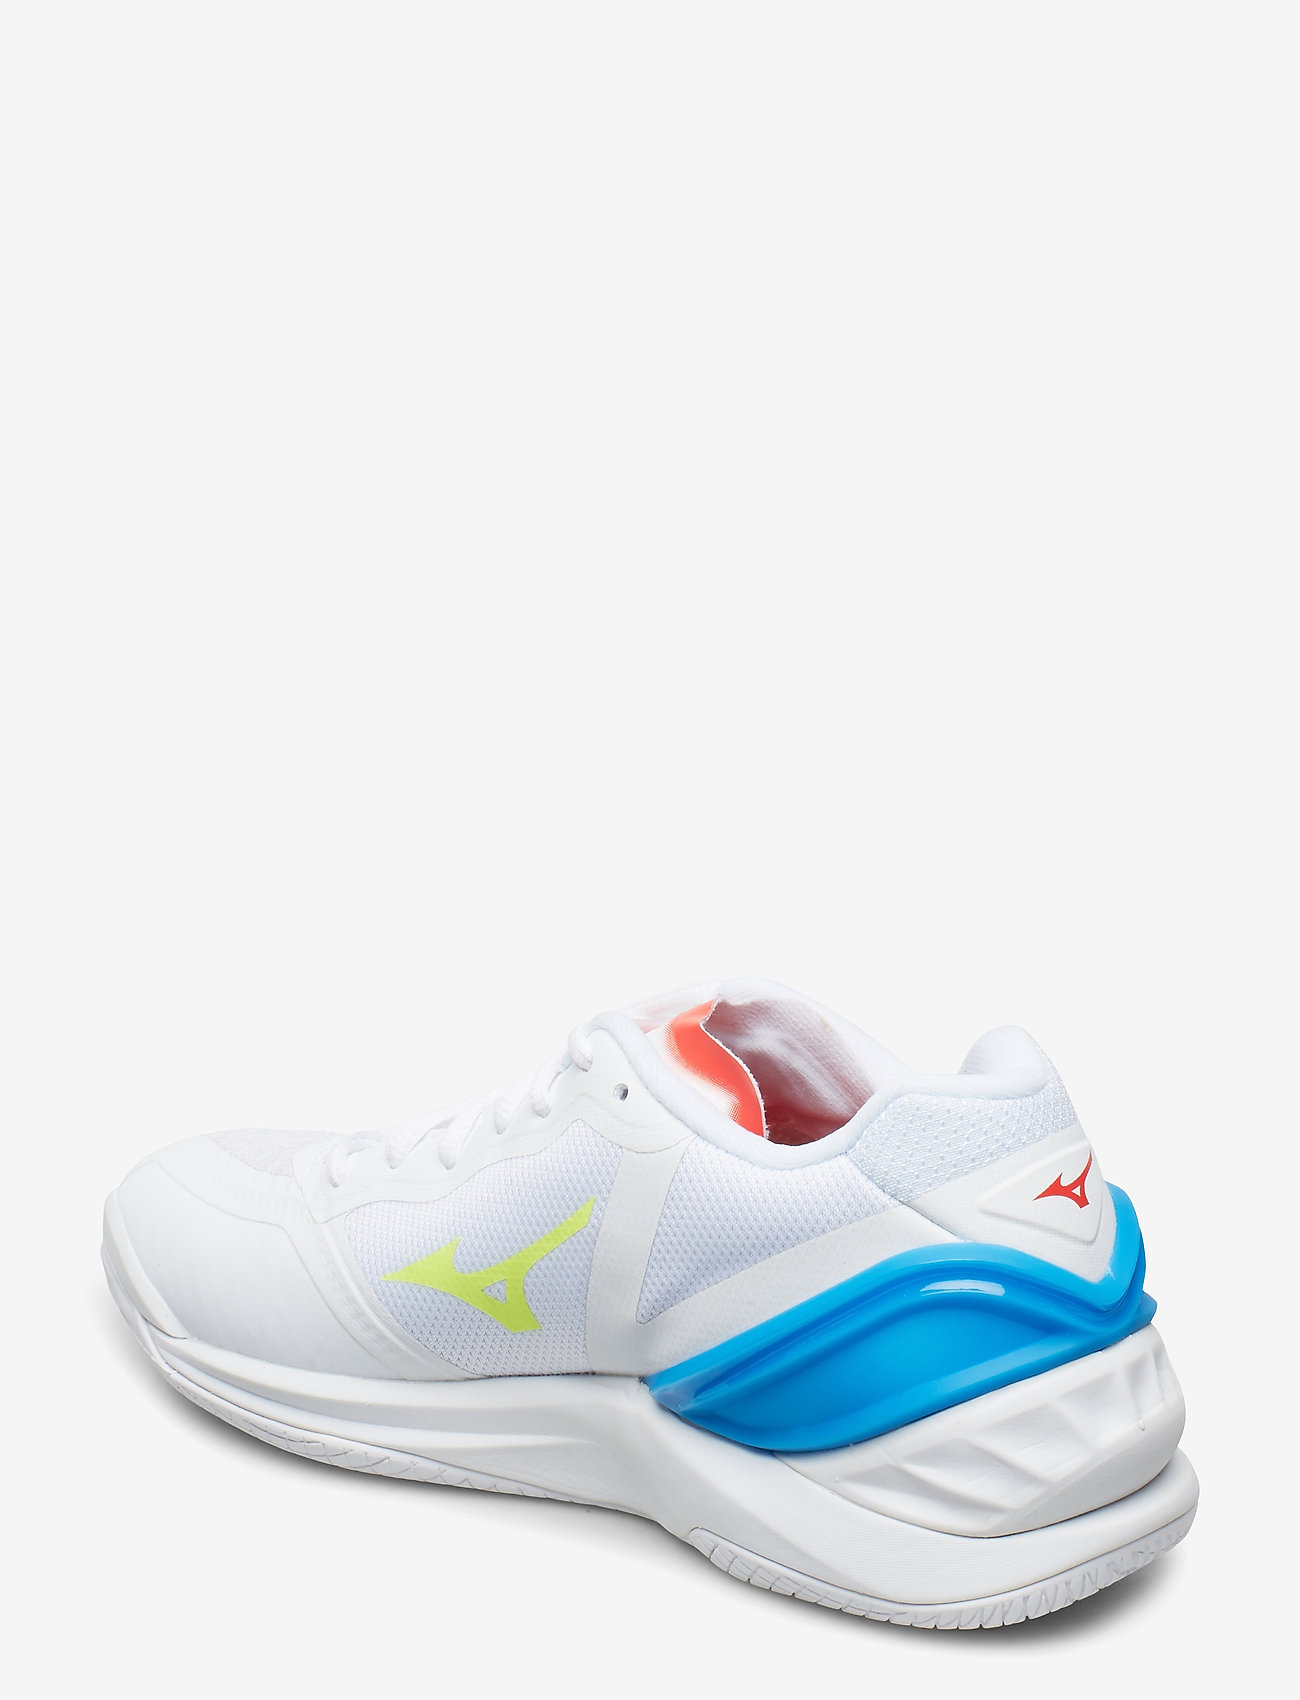 Wave Stealth Neo (White / Safety Yelow) (1200 kr) - Mizuno